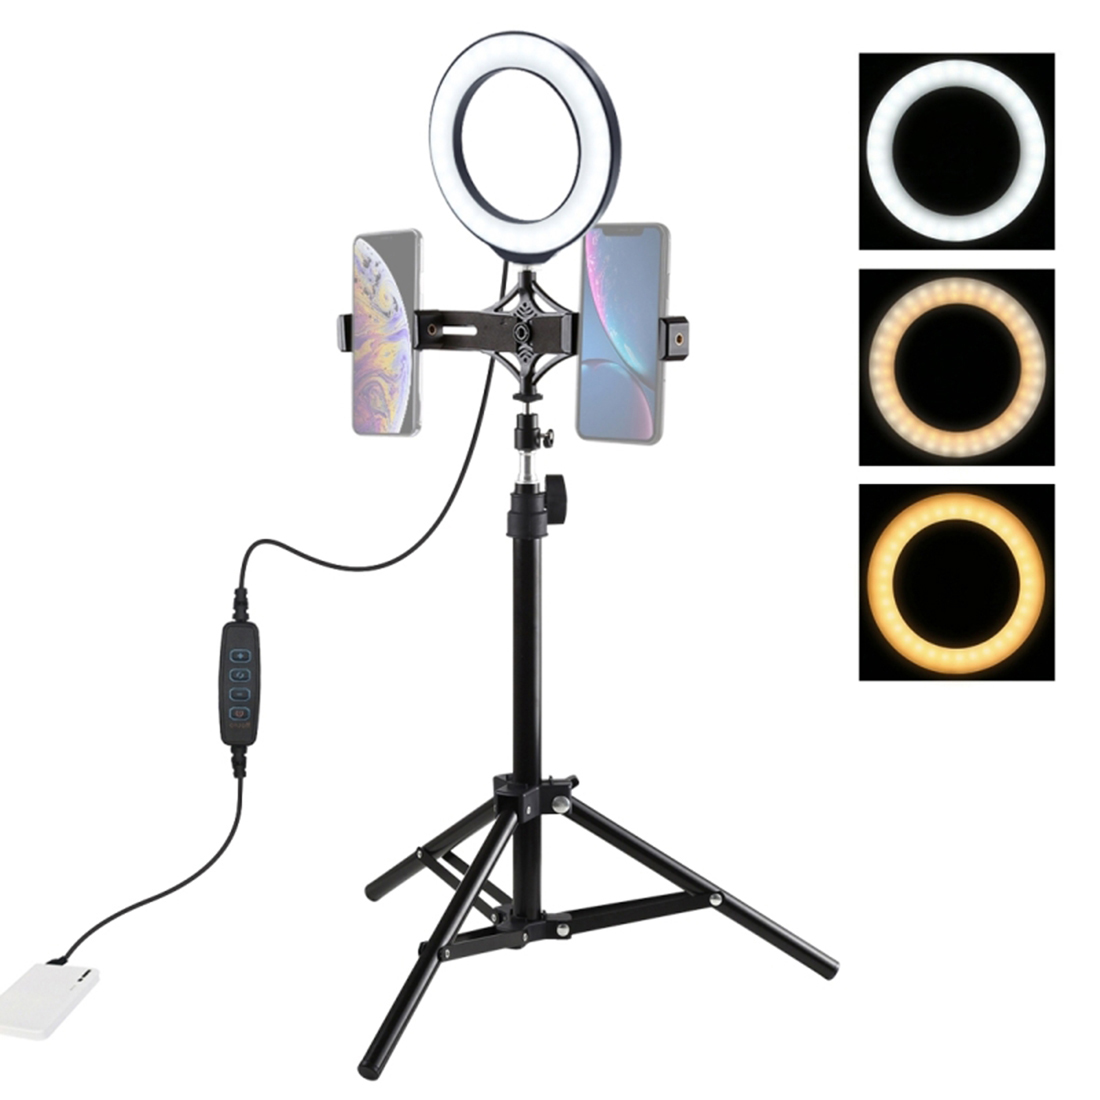 6.2 Inches Adjustable USB LED Ring Light Selfie Fill Light With Double Mobile Phone Holder And 70cm Tripod Bracket